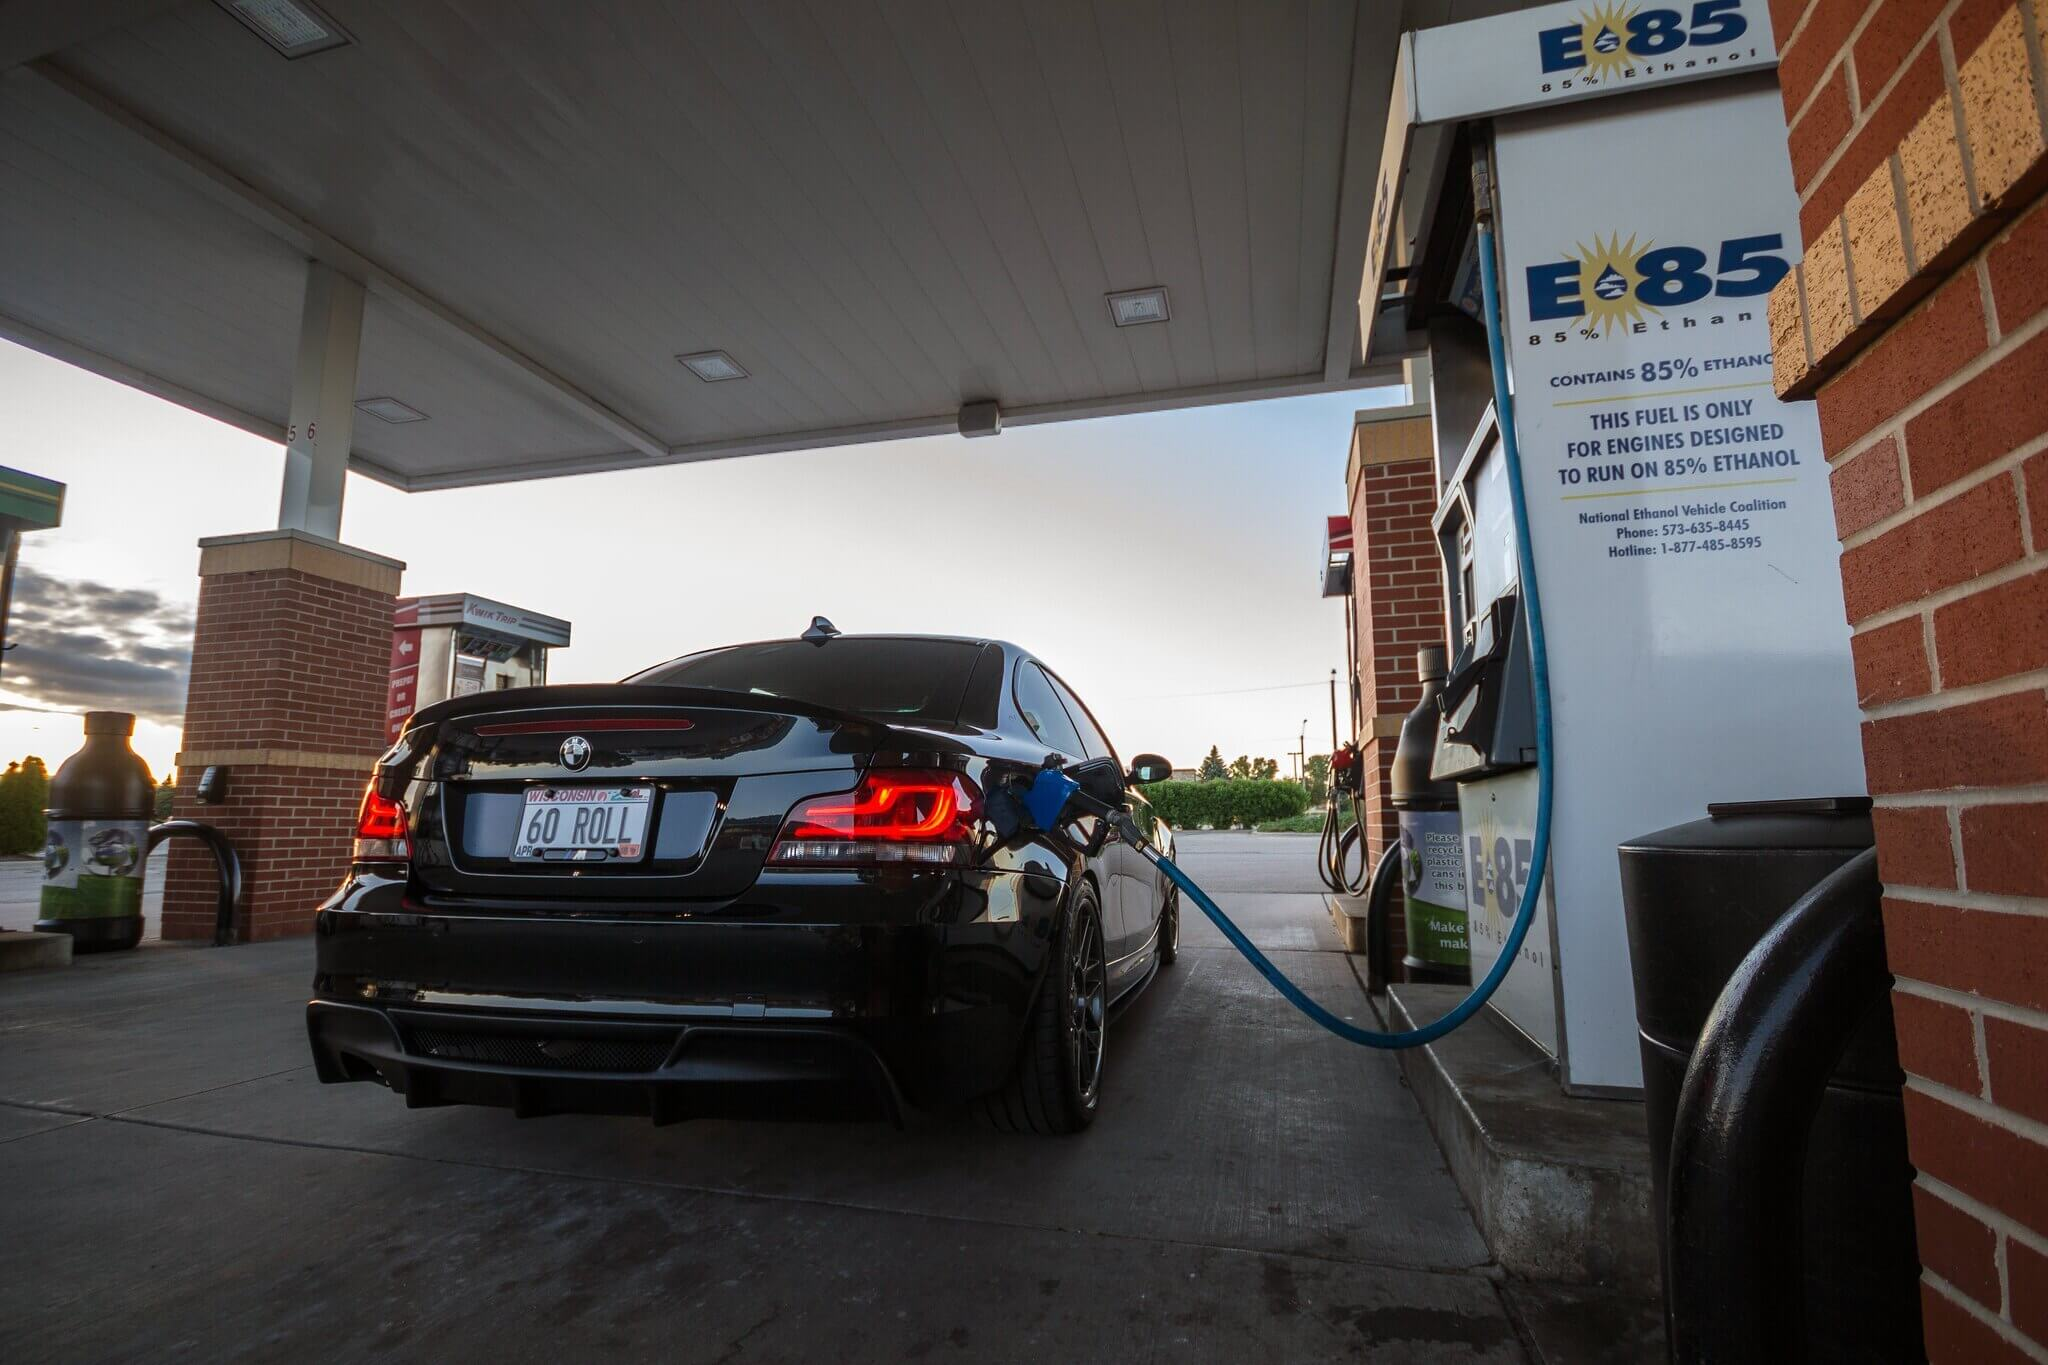 BMW 335i filling up with E85 fuel at the gas station